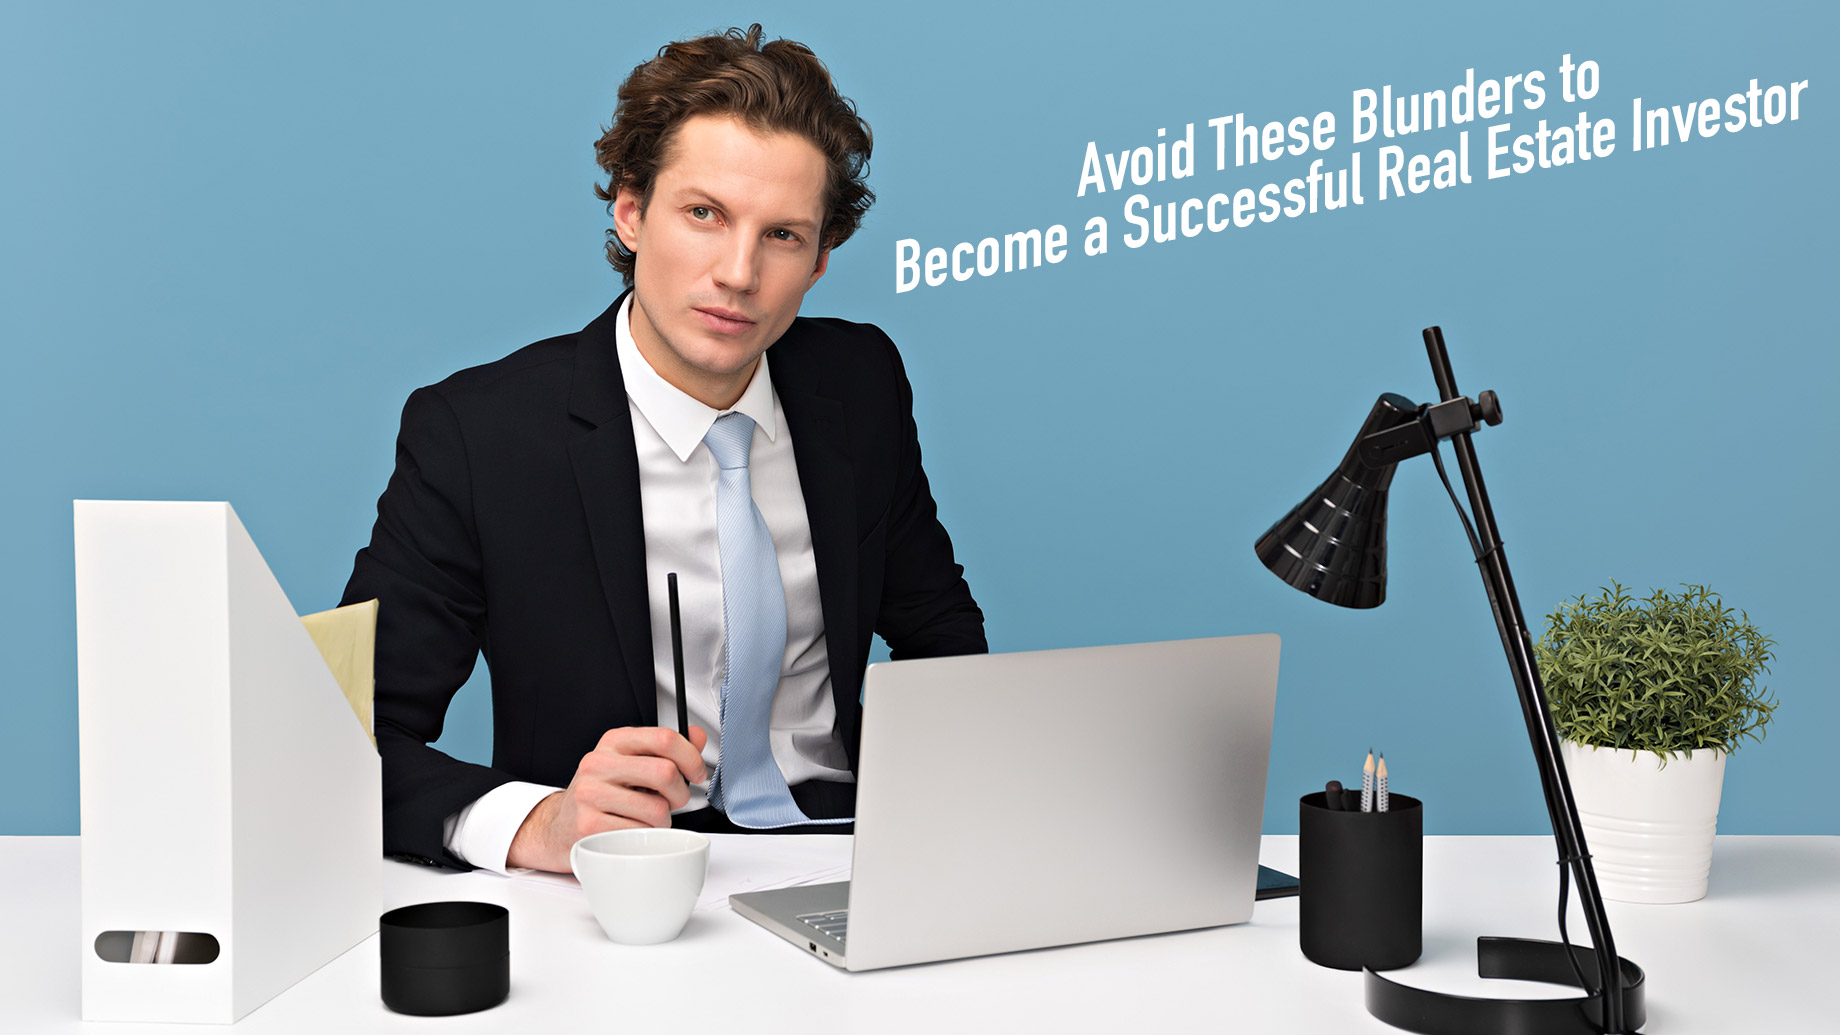 Avoid These Blunders to Become a Successful Real Estate Investor